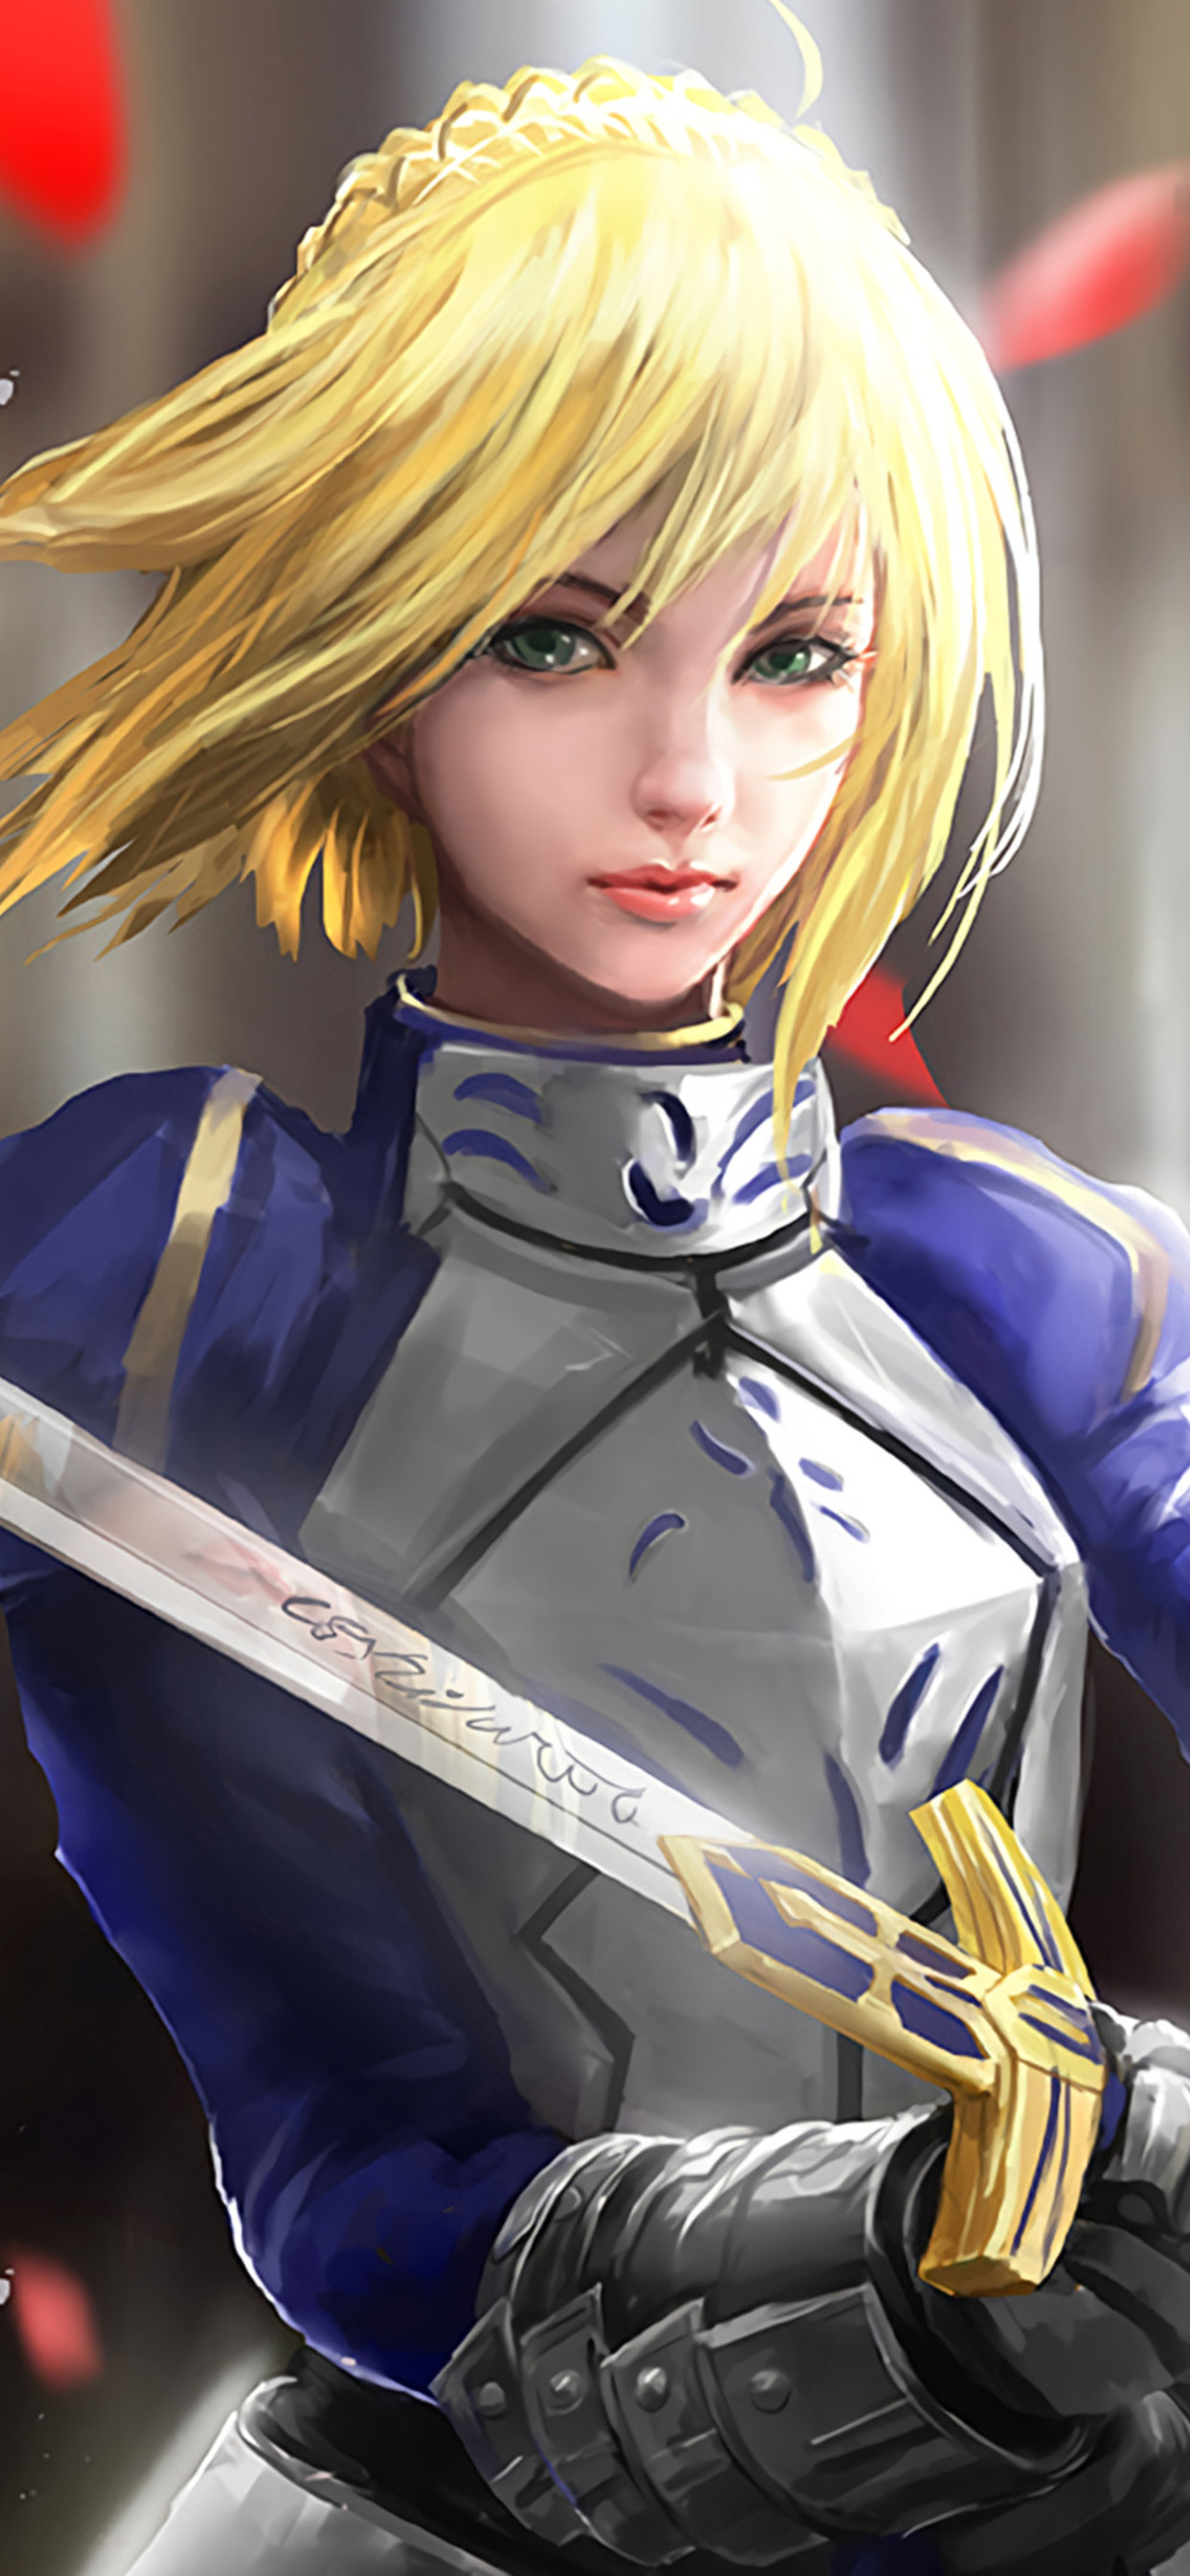 1242x2688 Fate Stay Night Iphone Xs Max Hd 4k Wallpapers Images Backgrounds Photos And Pictures